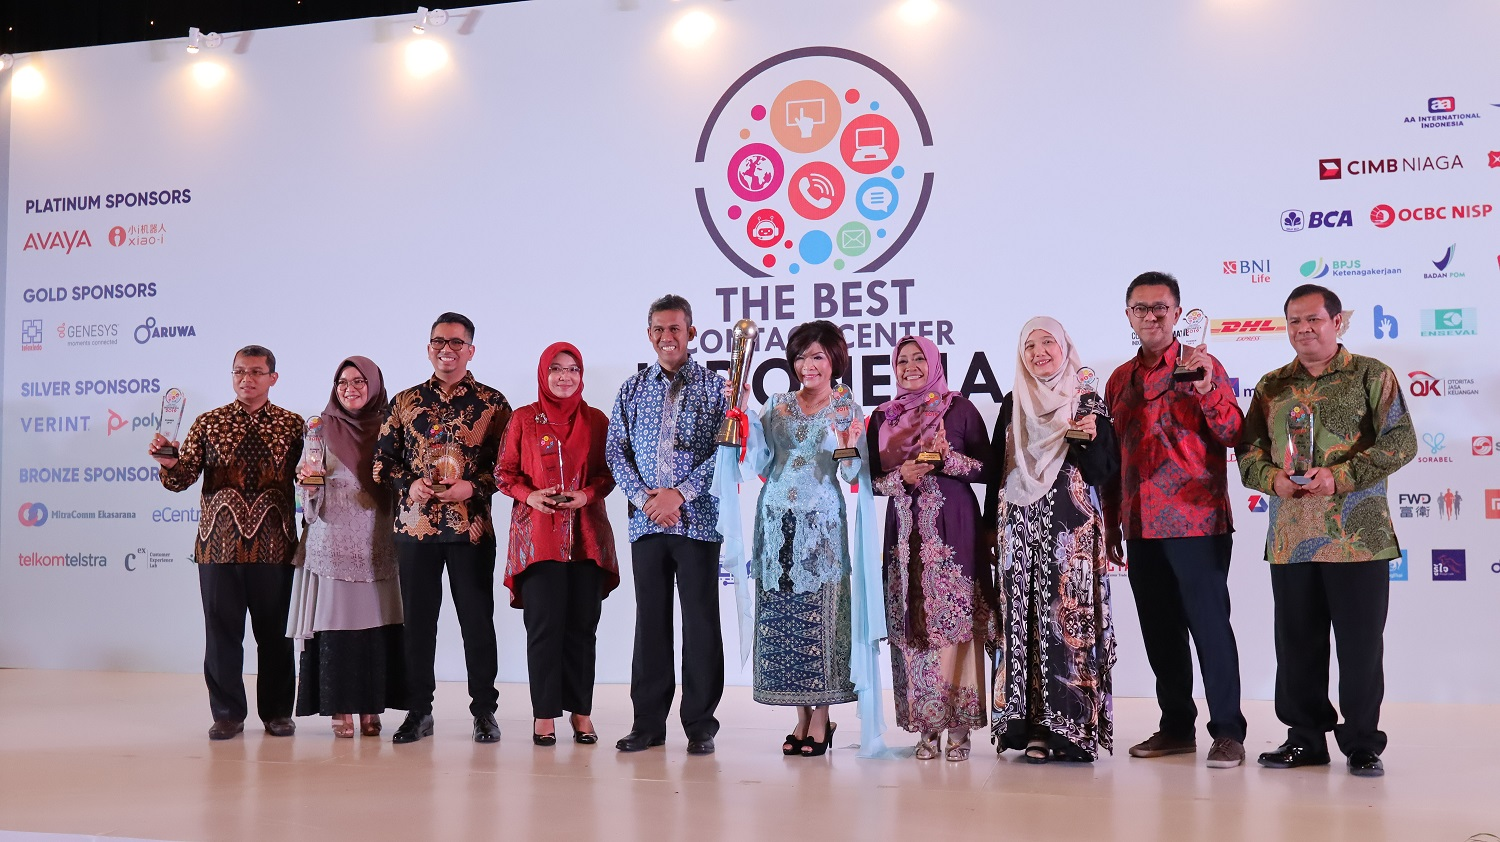 The Best Contact Center Indonesia AHM